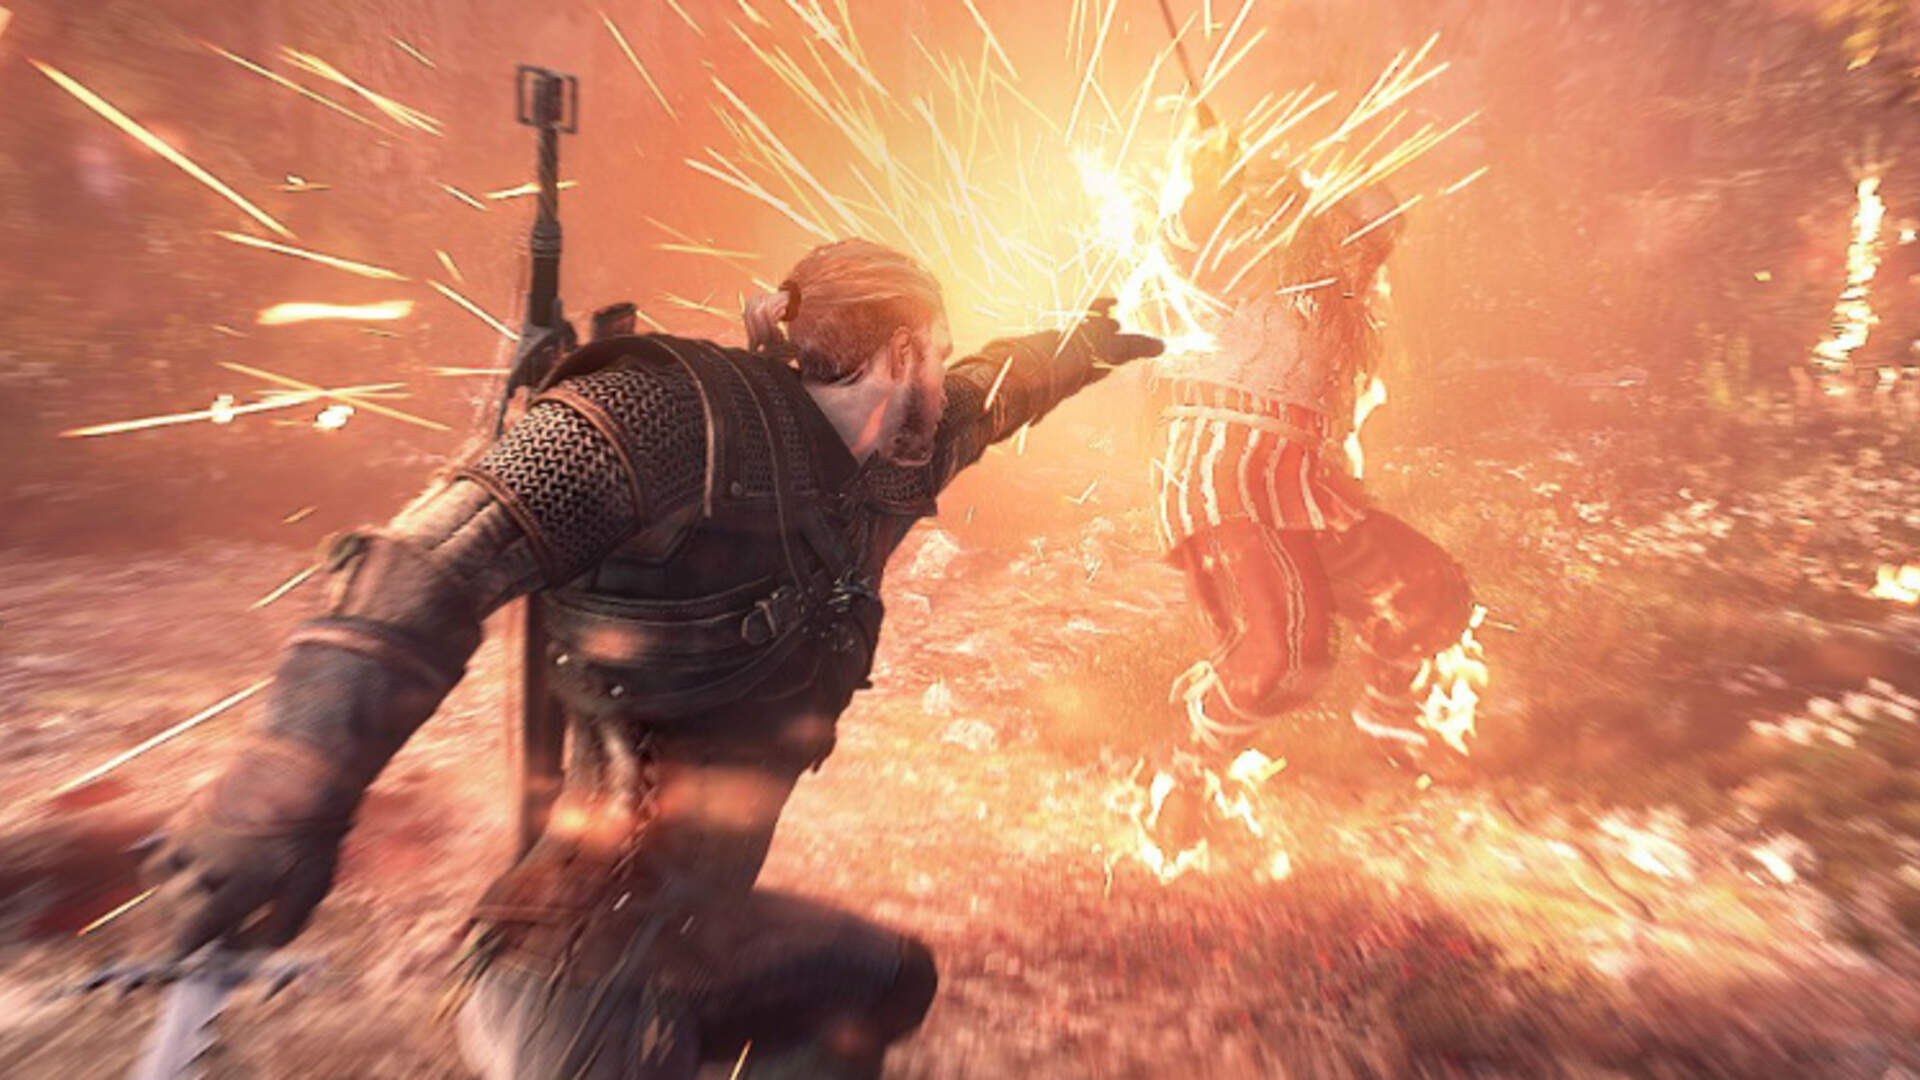 The Witcher 3: How to Use Skills, Signs, and Magic | USgamer